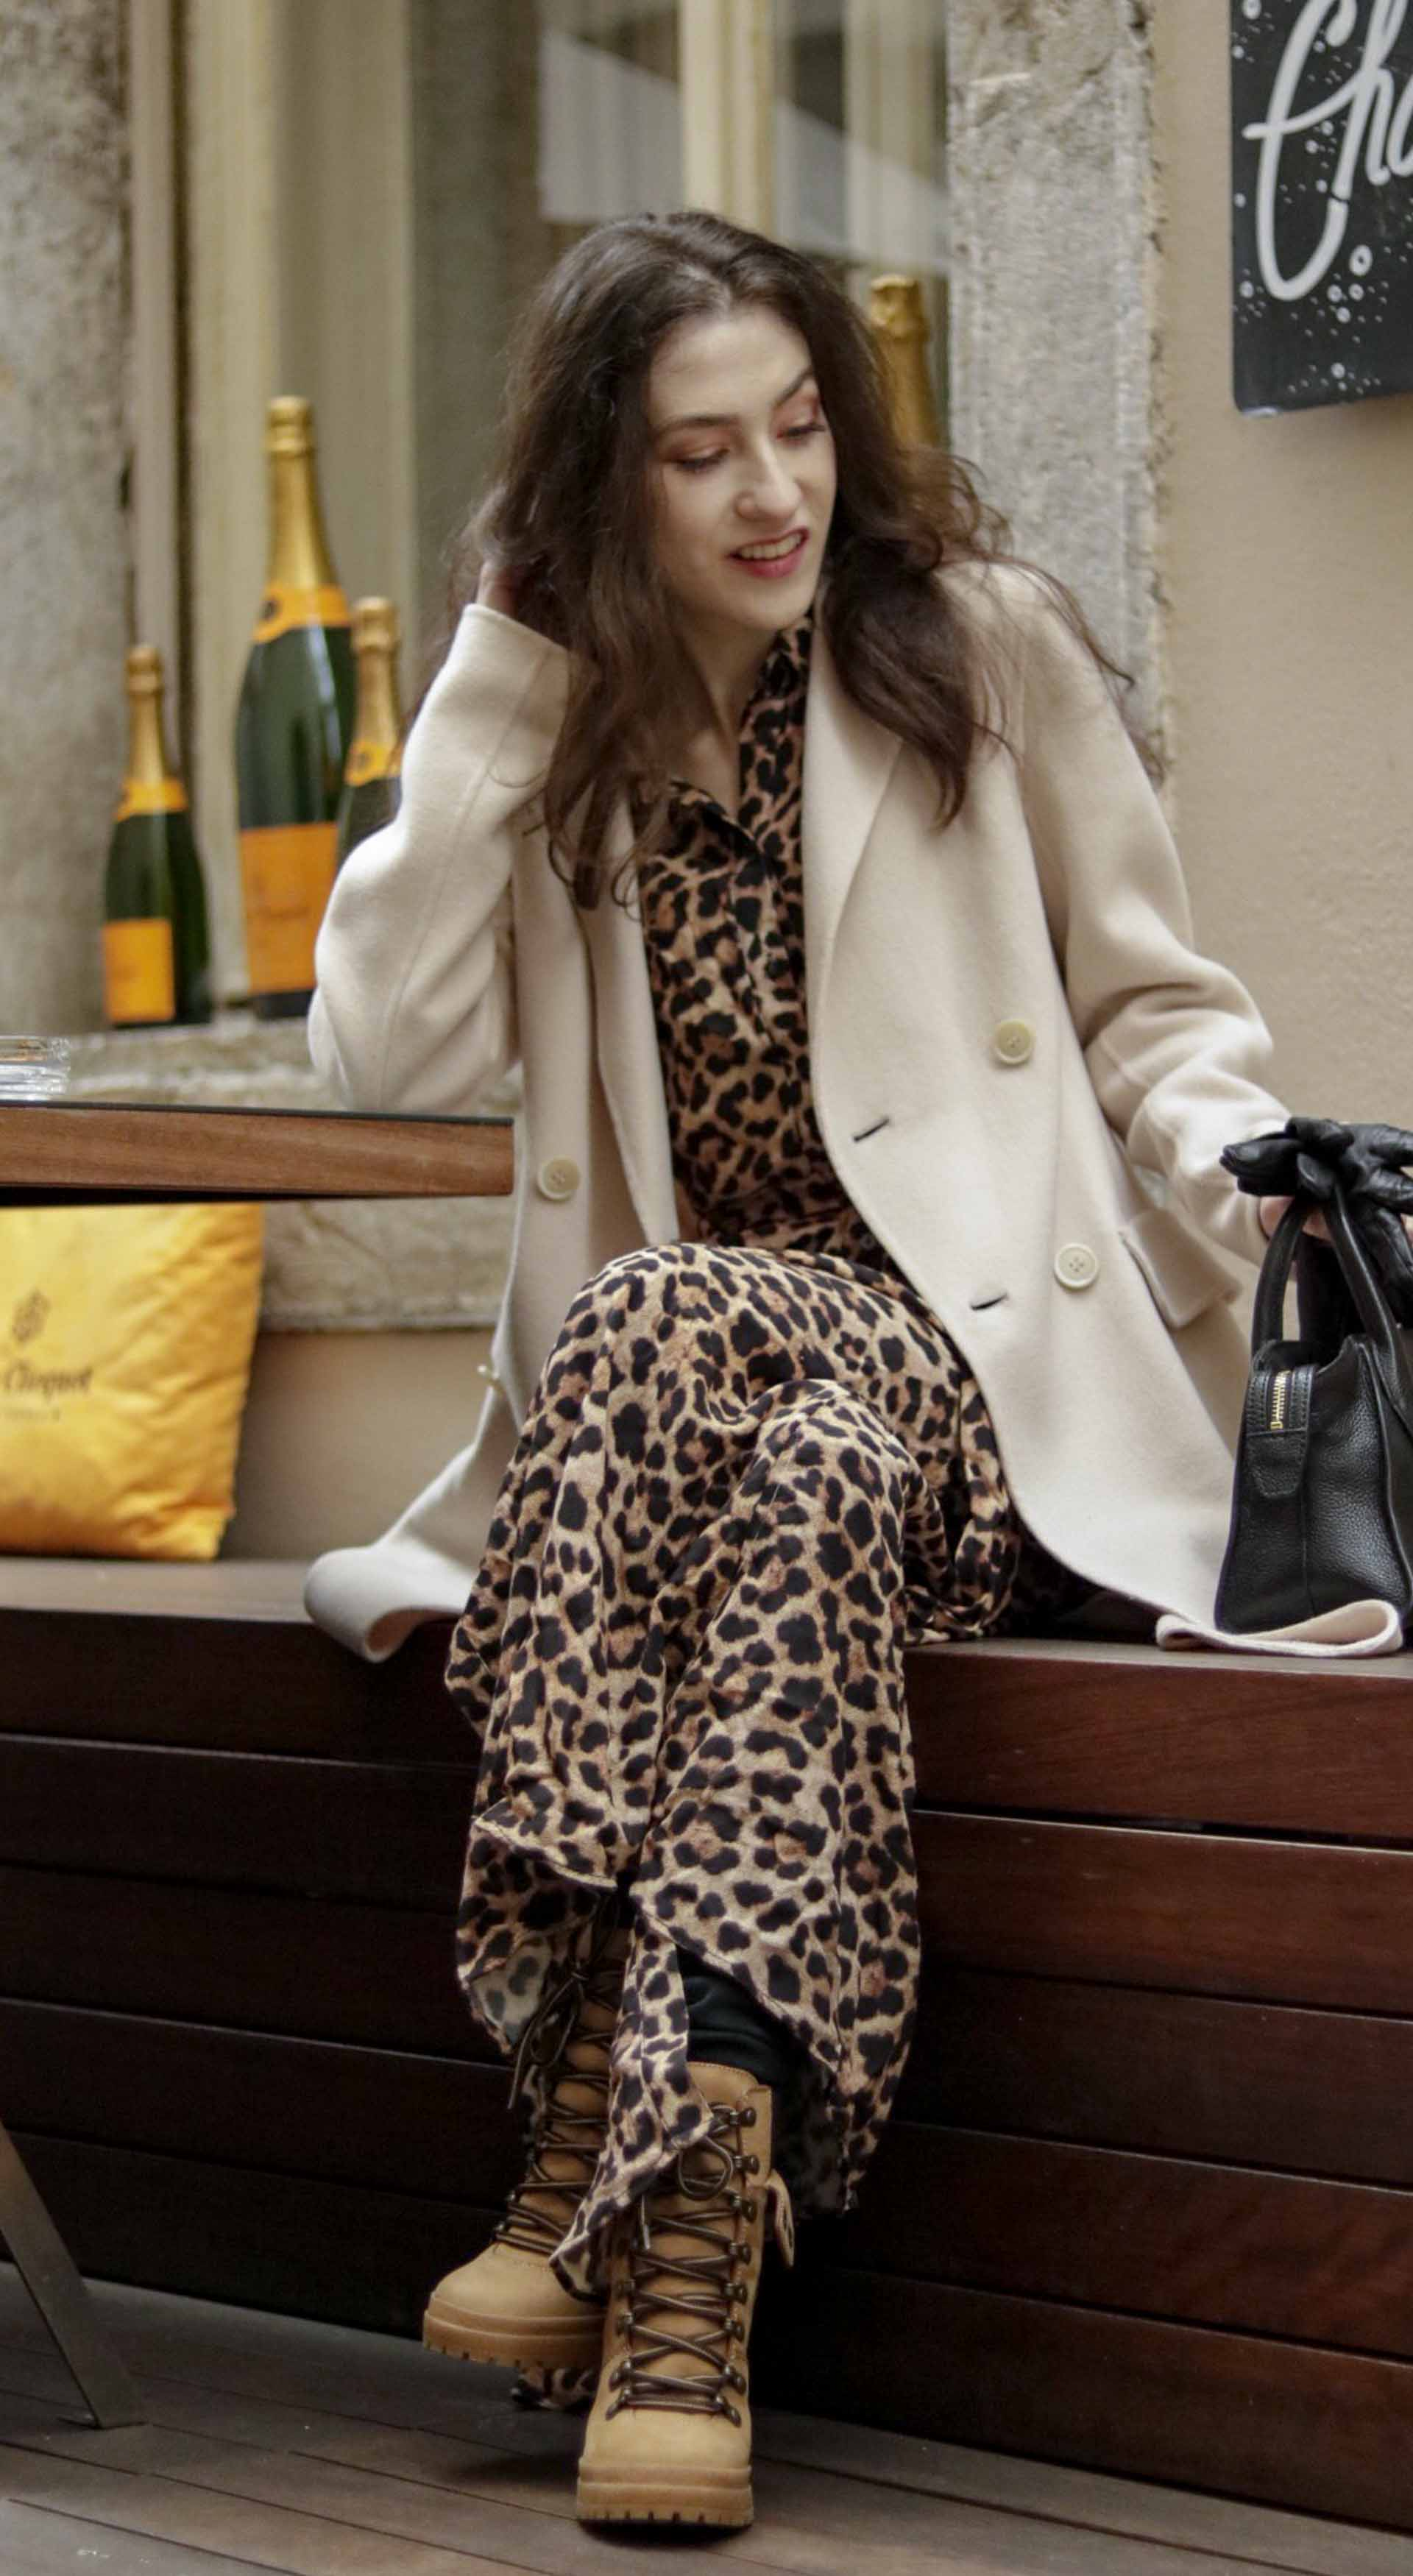 Beautiful Slovenian Fashion Blogger Veronika Lipar of Brunette from Wall wearing Weekend Max Mara double-breasted coat, leopard print long Ganni dress, See By Chloé hiking boots, black skinny jeans for outdoor party in winter